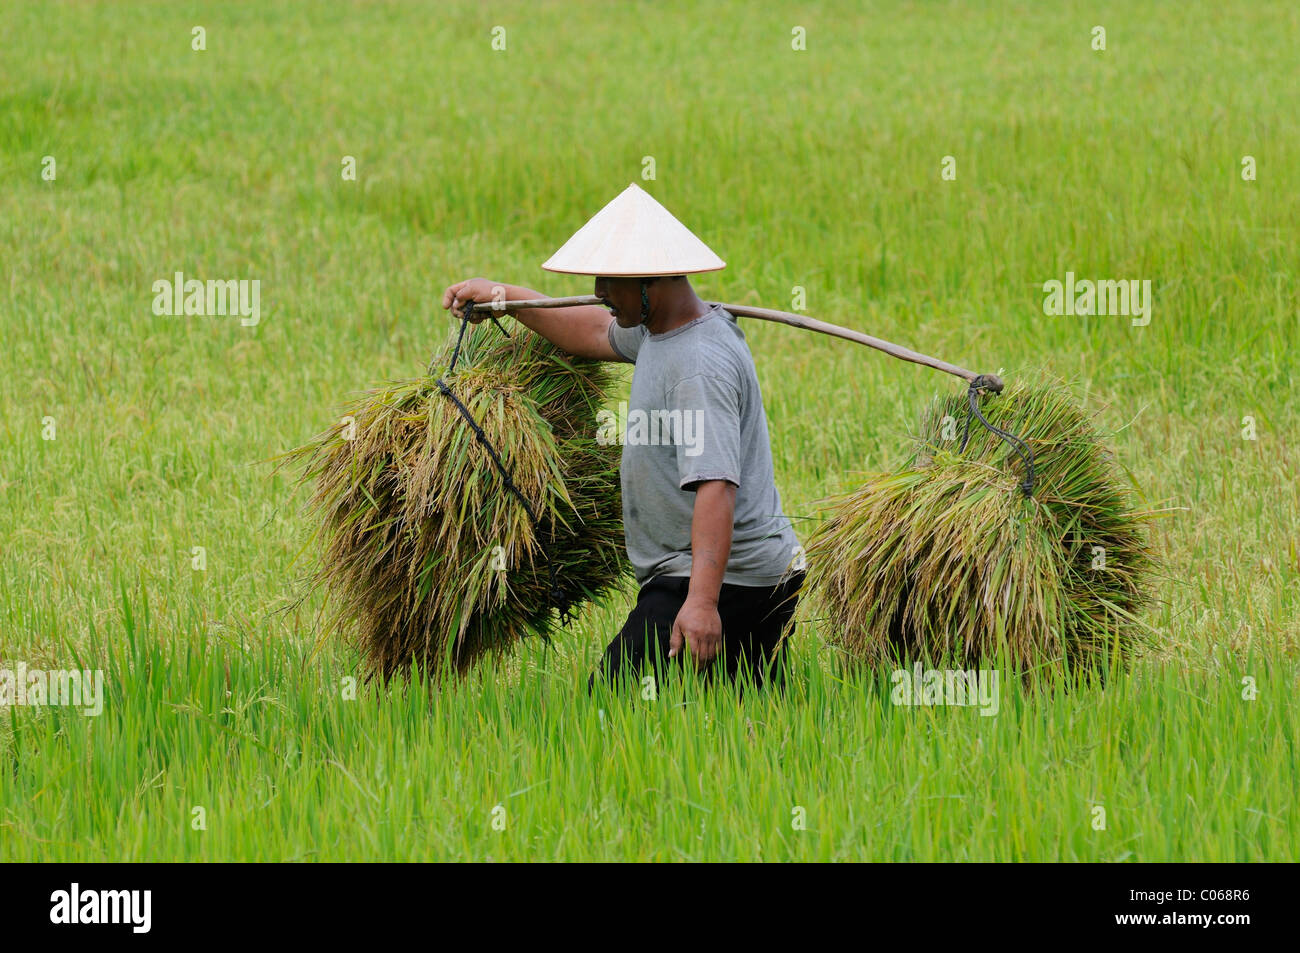 Man with cone-shaped hat harvesting rice, Vietnam, Asia - Stock Image